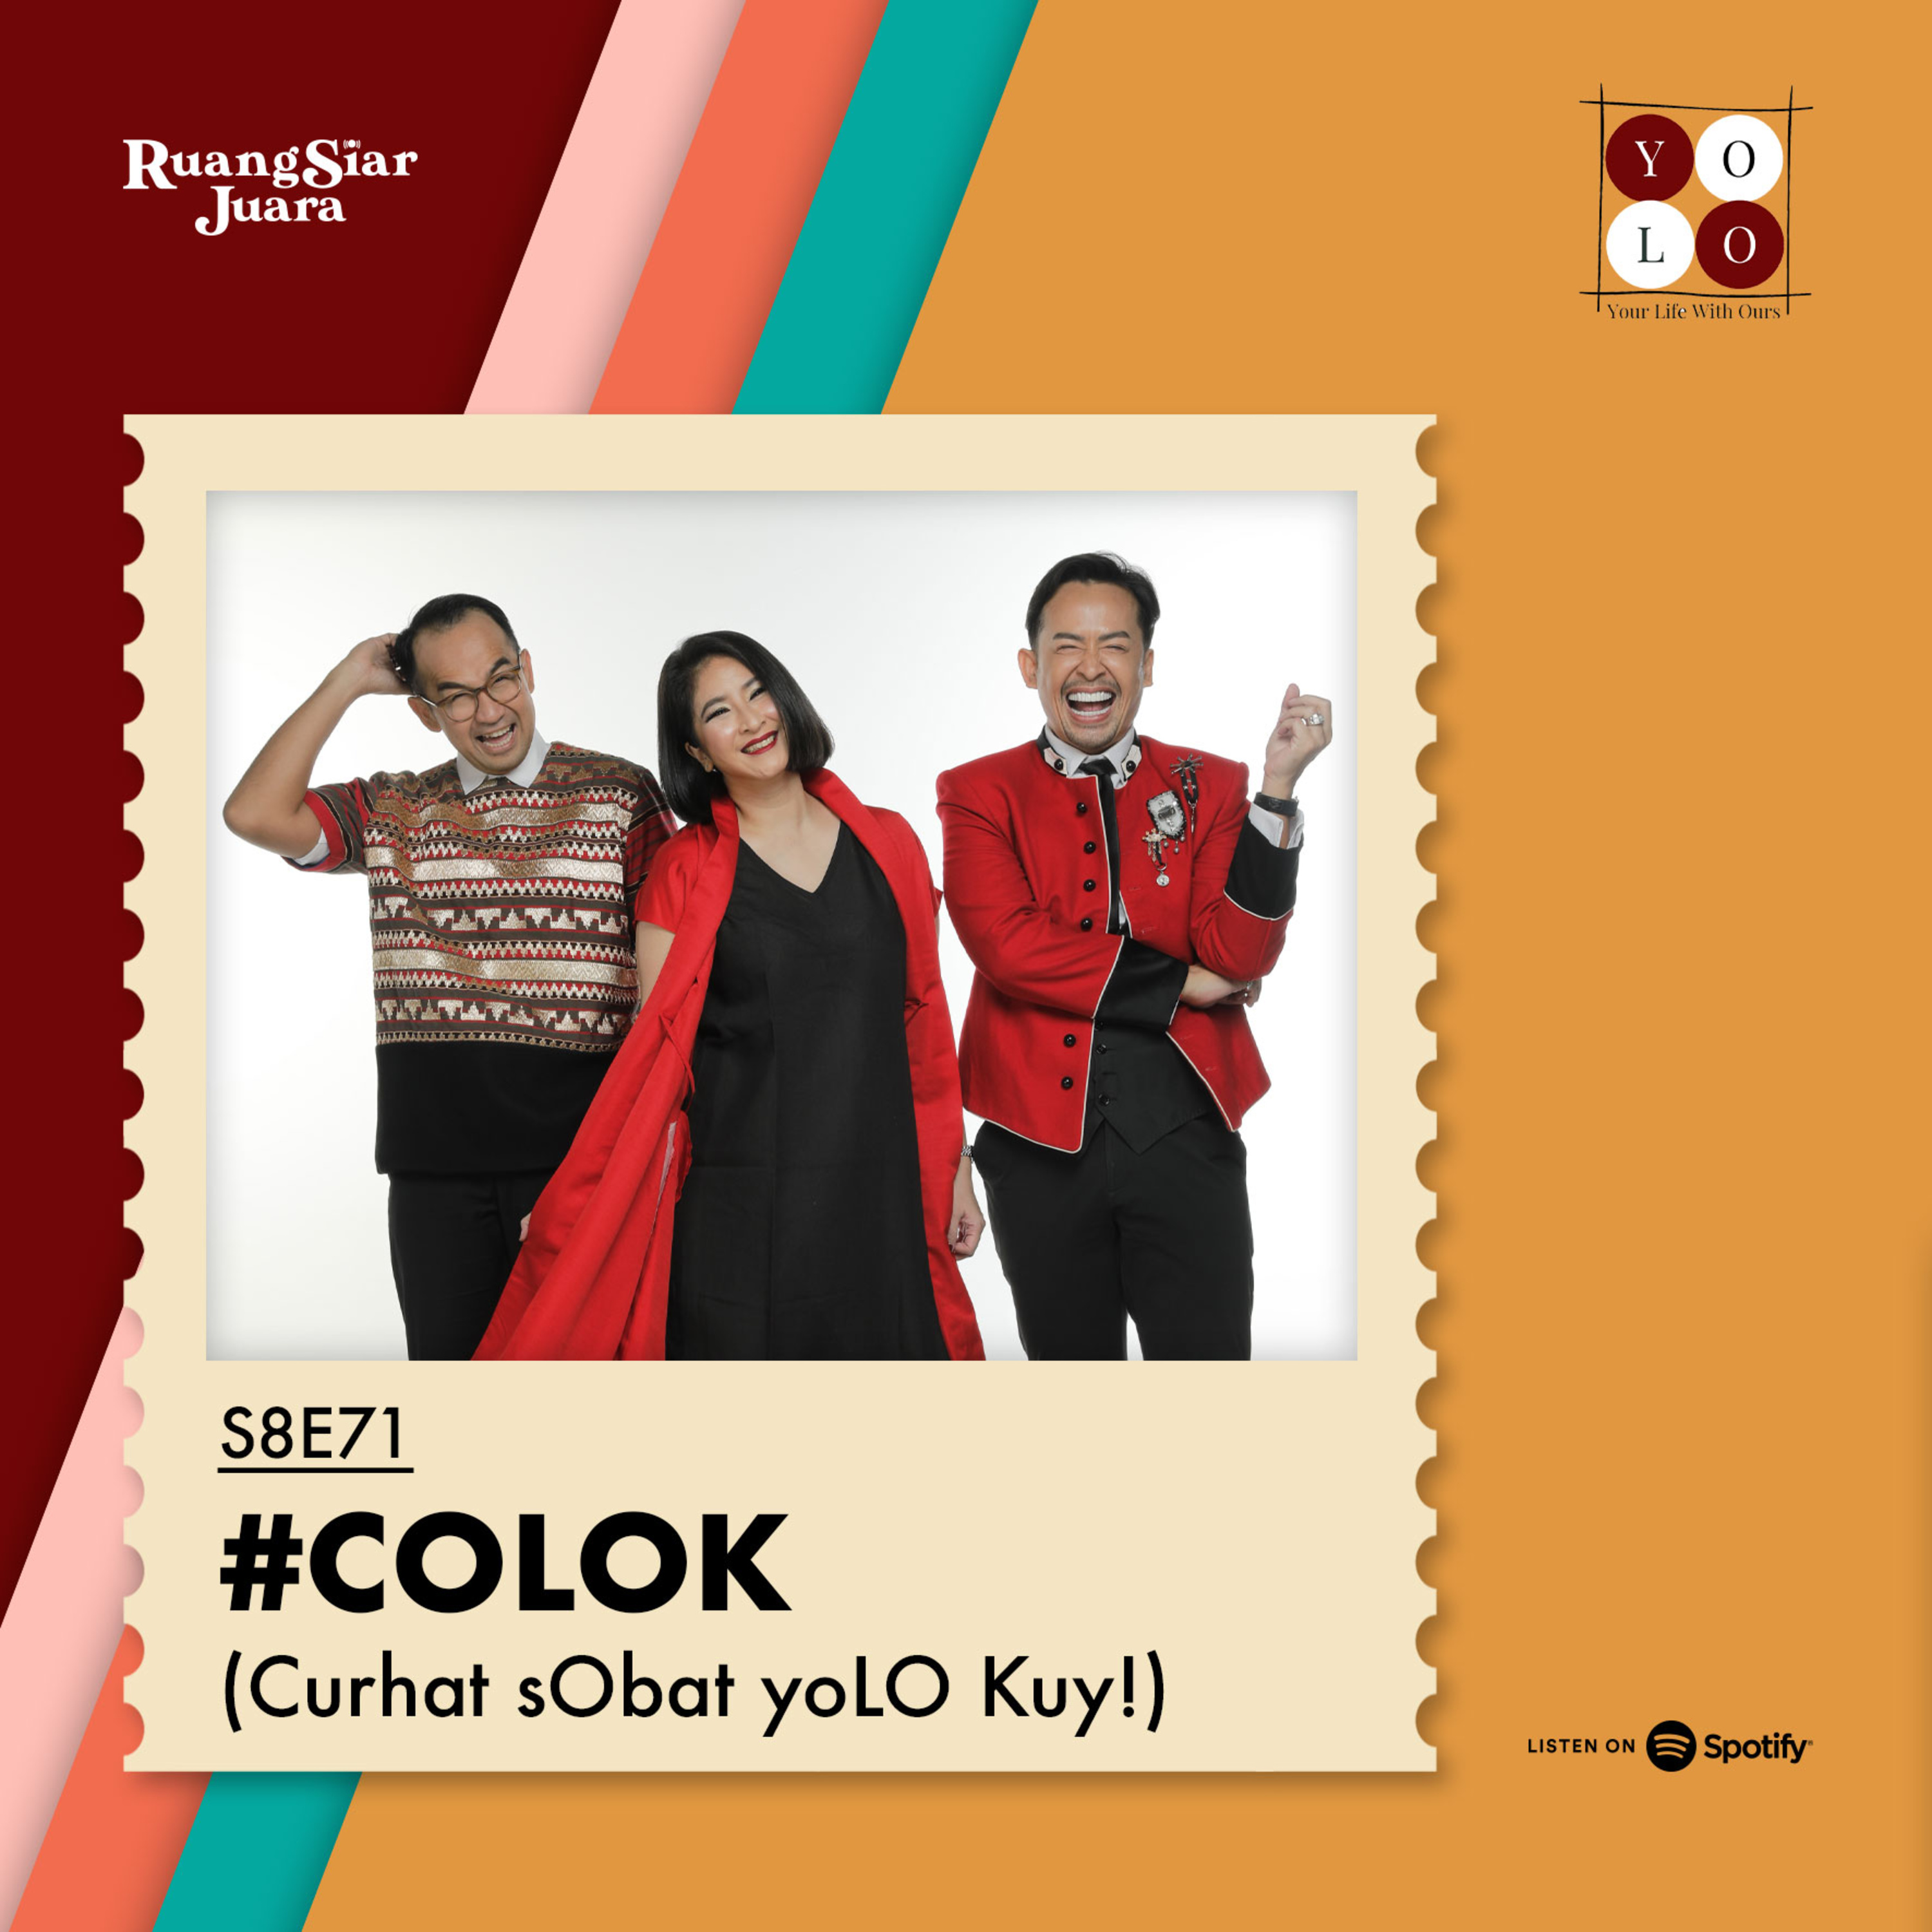 YOLO (YOur Life with Ours!) - S8E71 #COLOK (Curhat sObat yoLO Kuy!)